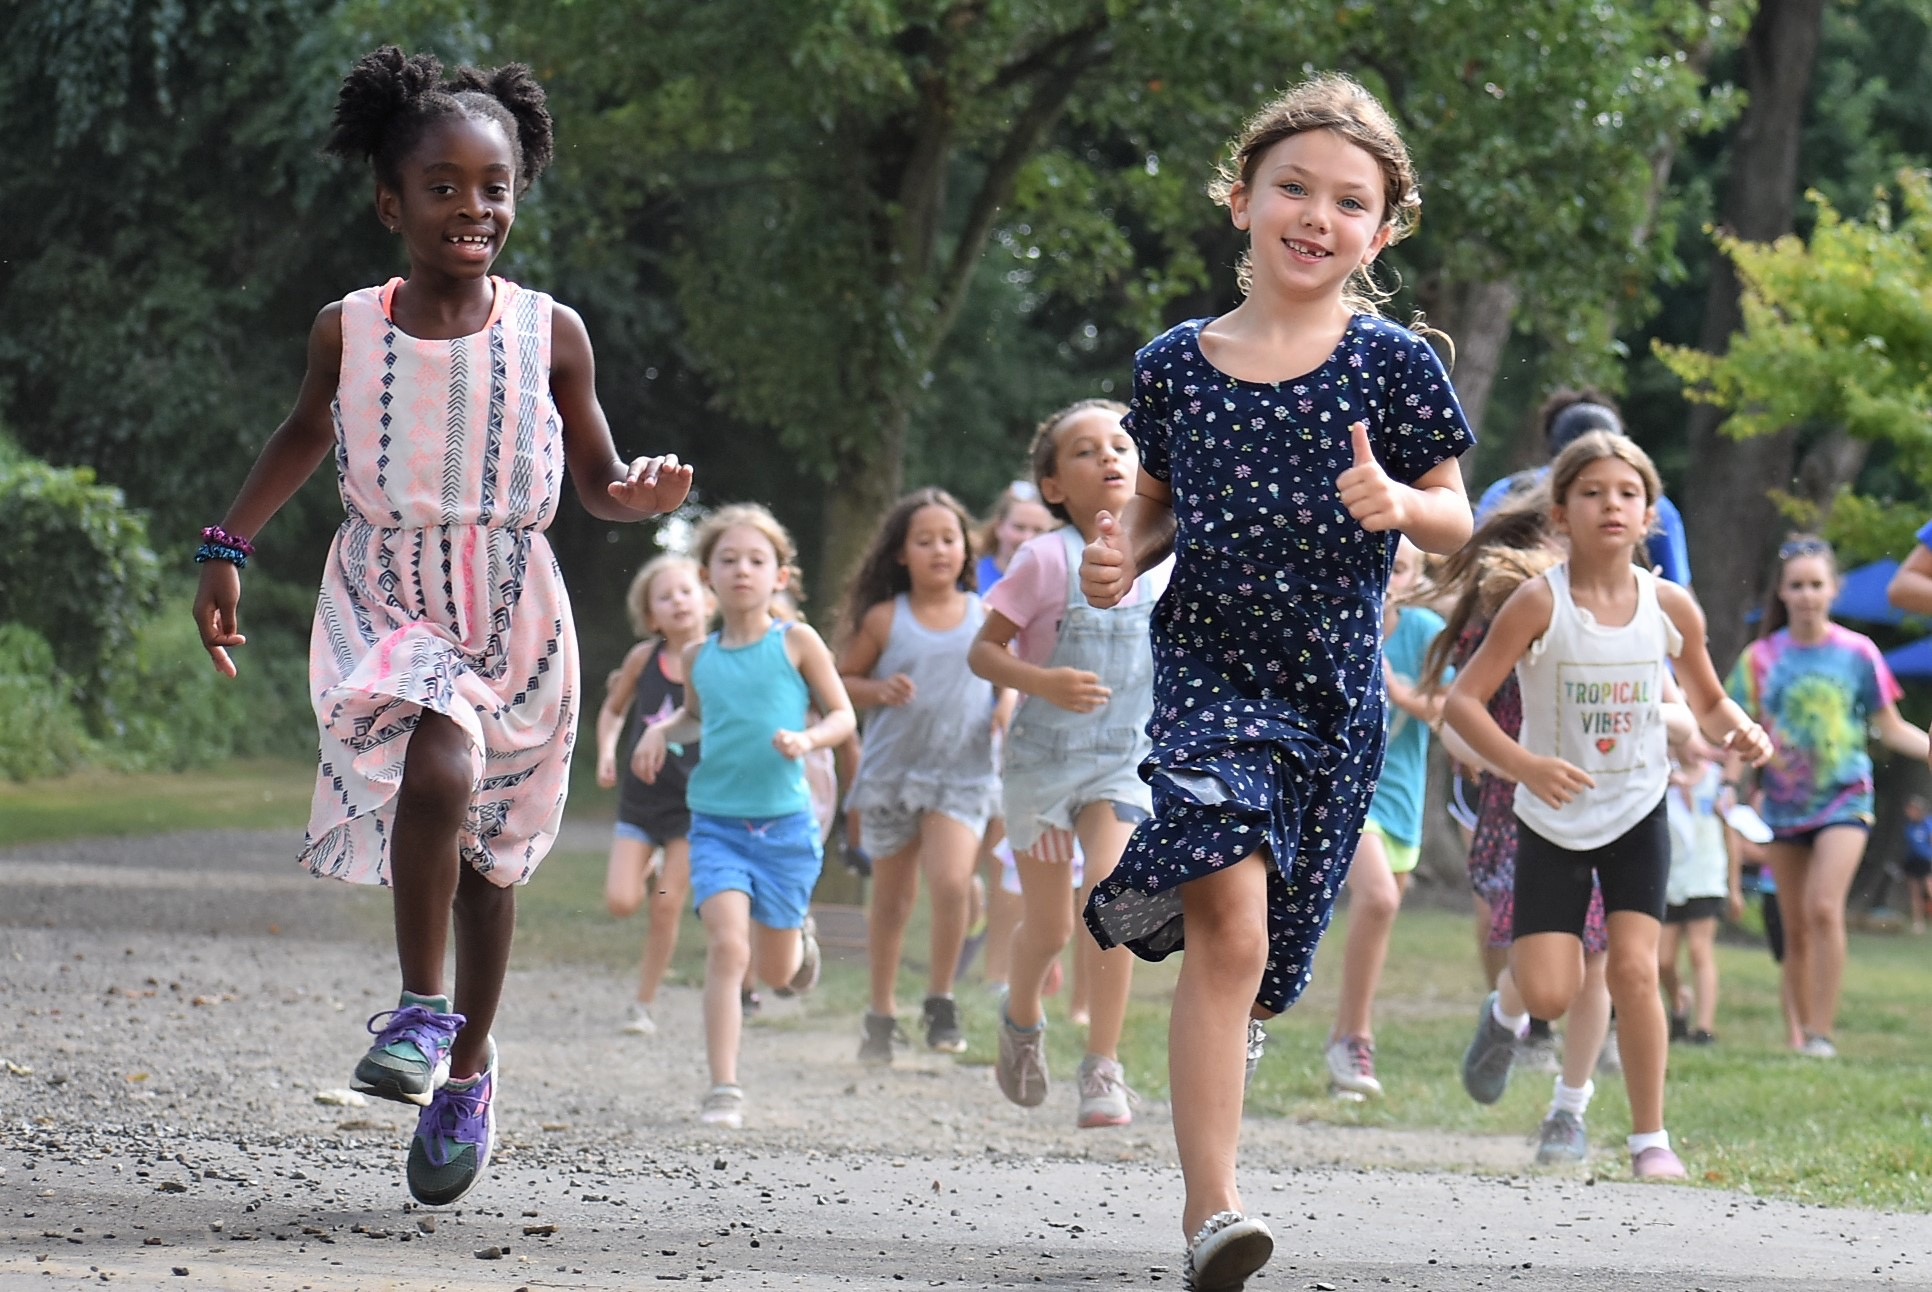 Campers run at Liberty Lake Day Camp in Mansfield Township, N.J.